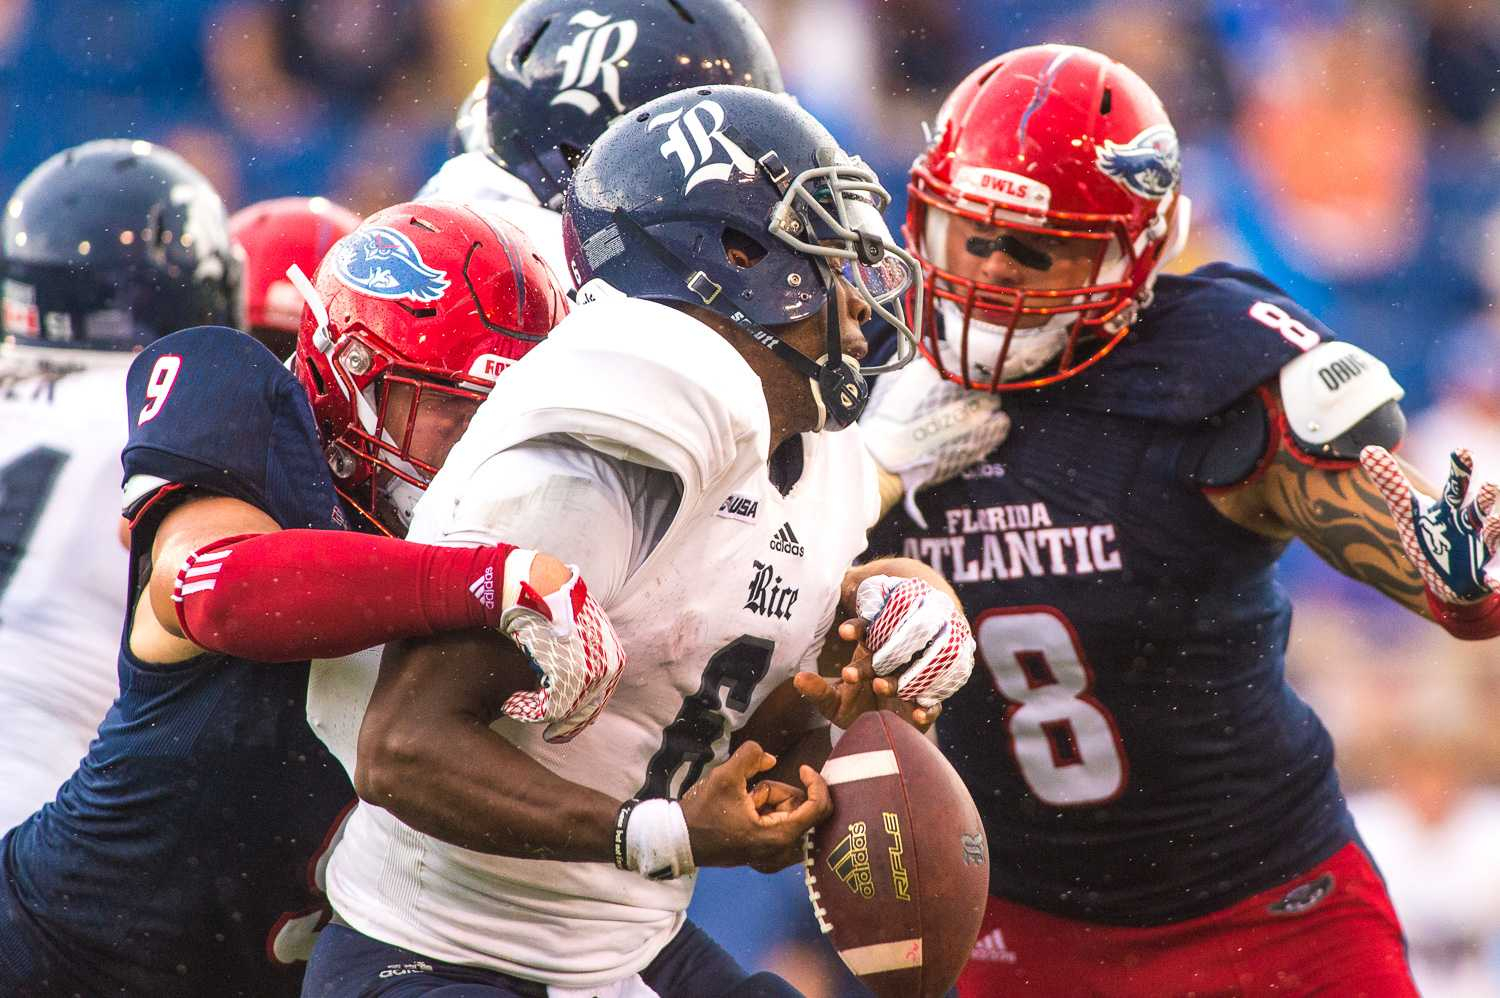 Junior defensive end for the FAU Owls, Trey Hendrickson (9), sacks Rice quarterback Driphus Jackson (6), forcing a fumble that lead to FAU gaining possession on Rice's 27-yard line. Max Jackson | Staff Photographer